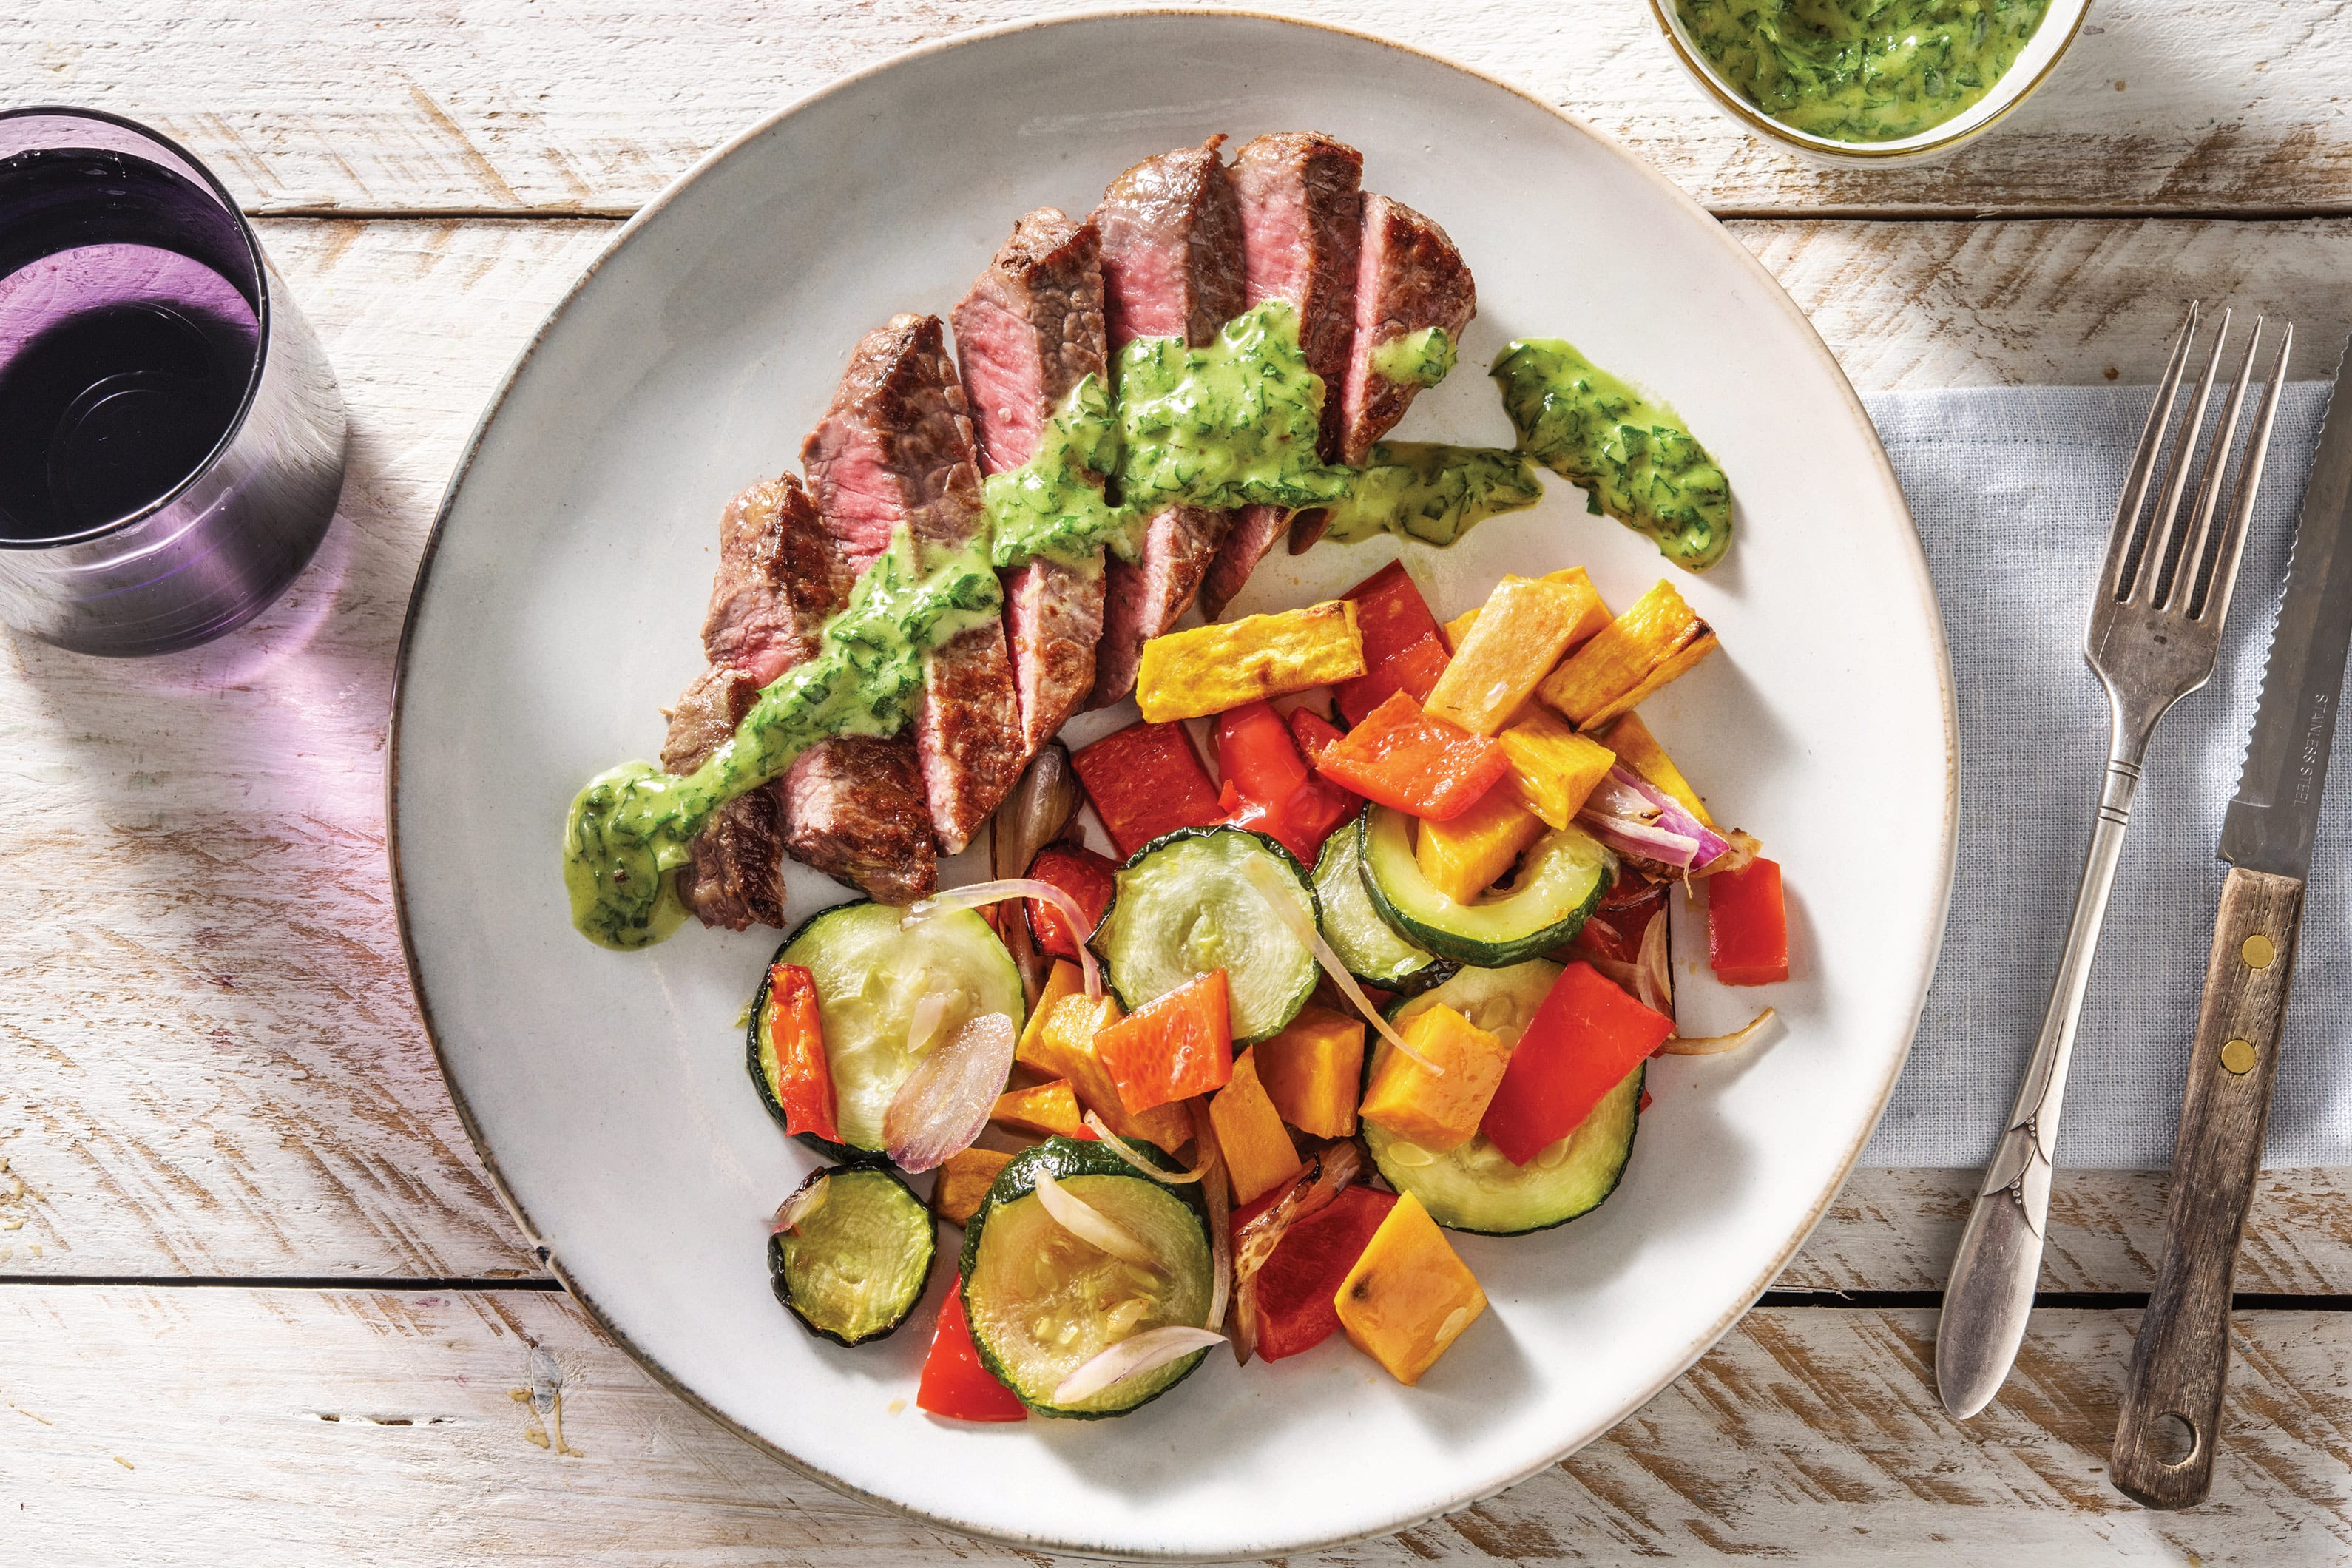 Argentinian Steak & Chimichurri